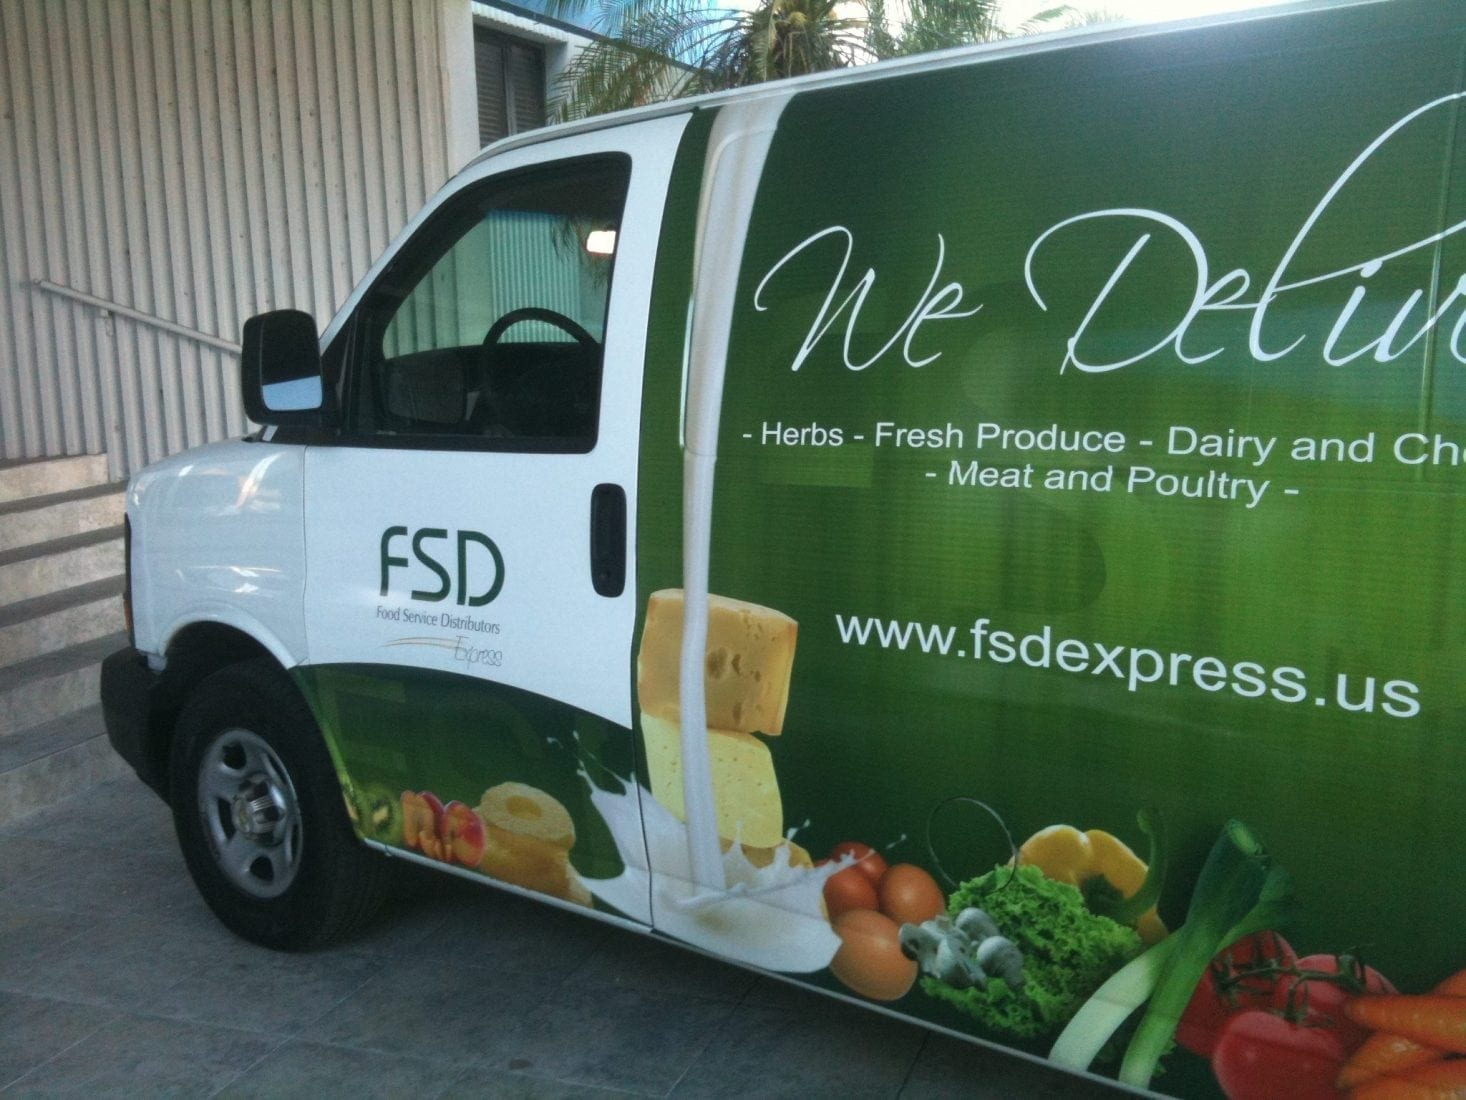 Vehicle Wraps: 'The Way to Go'